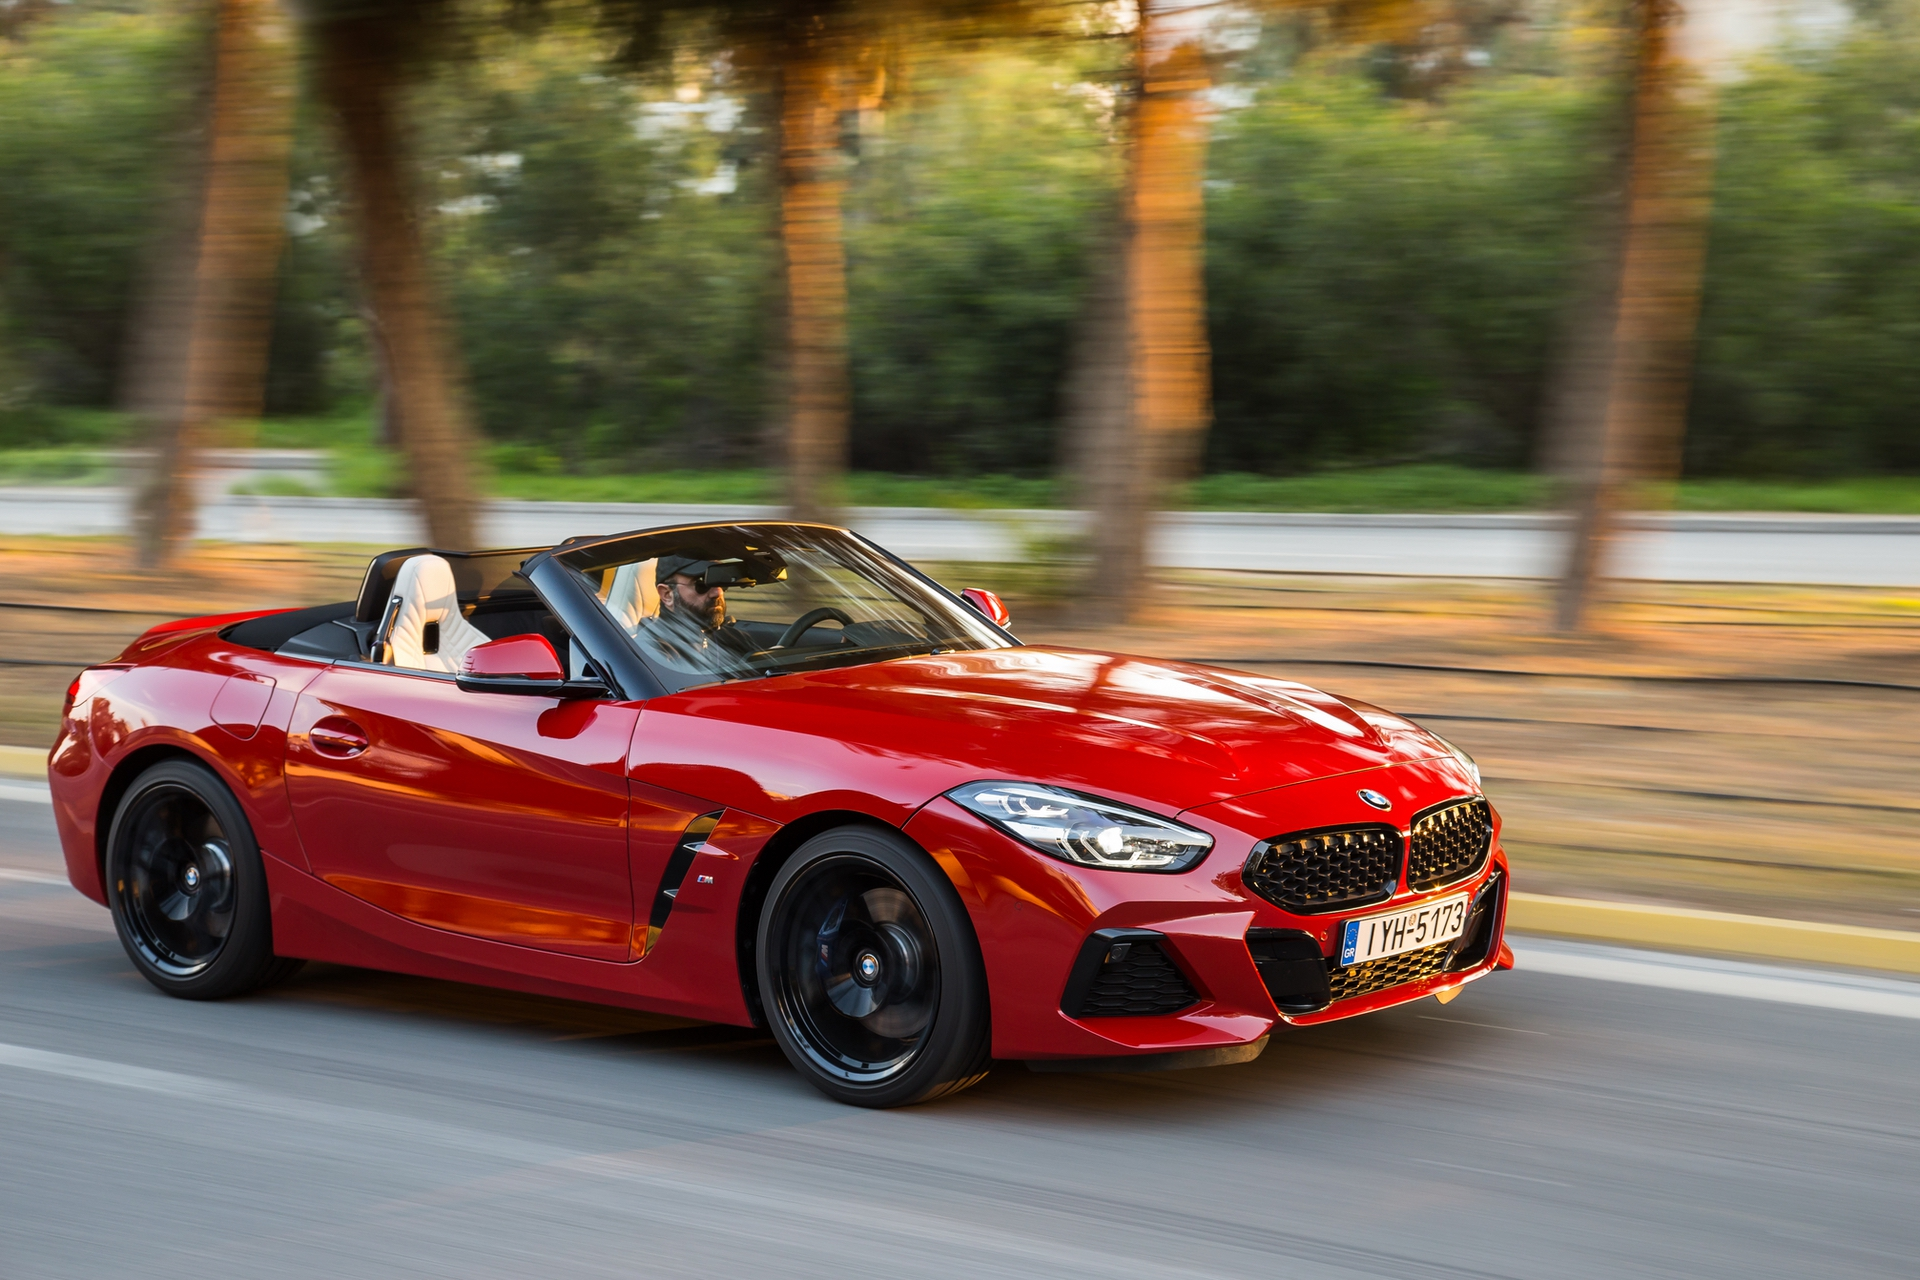 BMW_Z4_Greek_0016